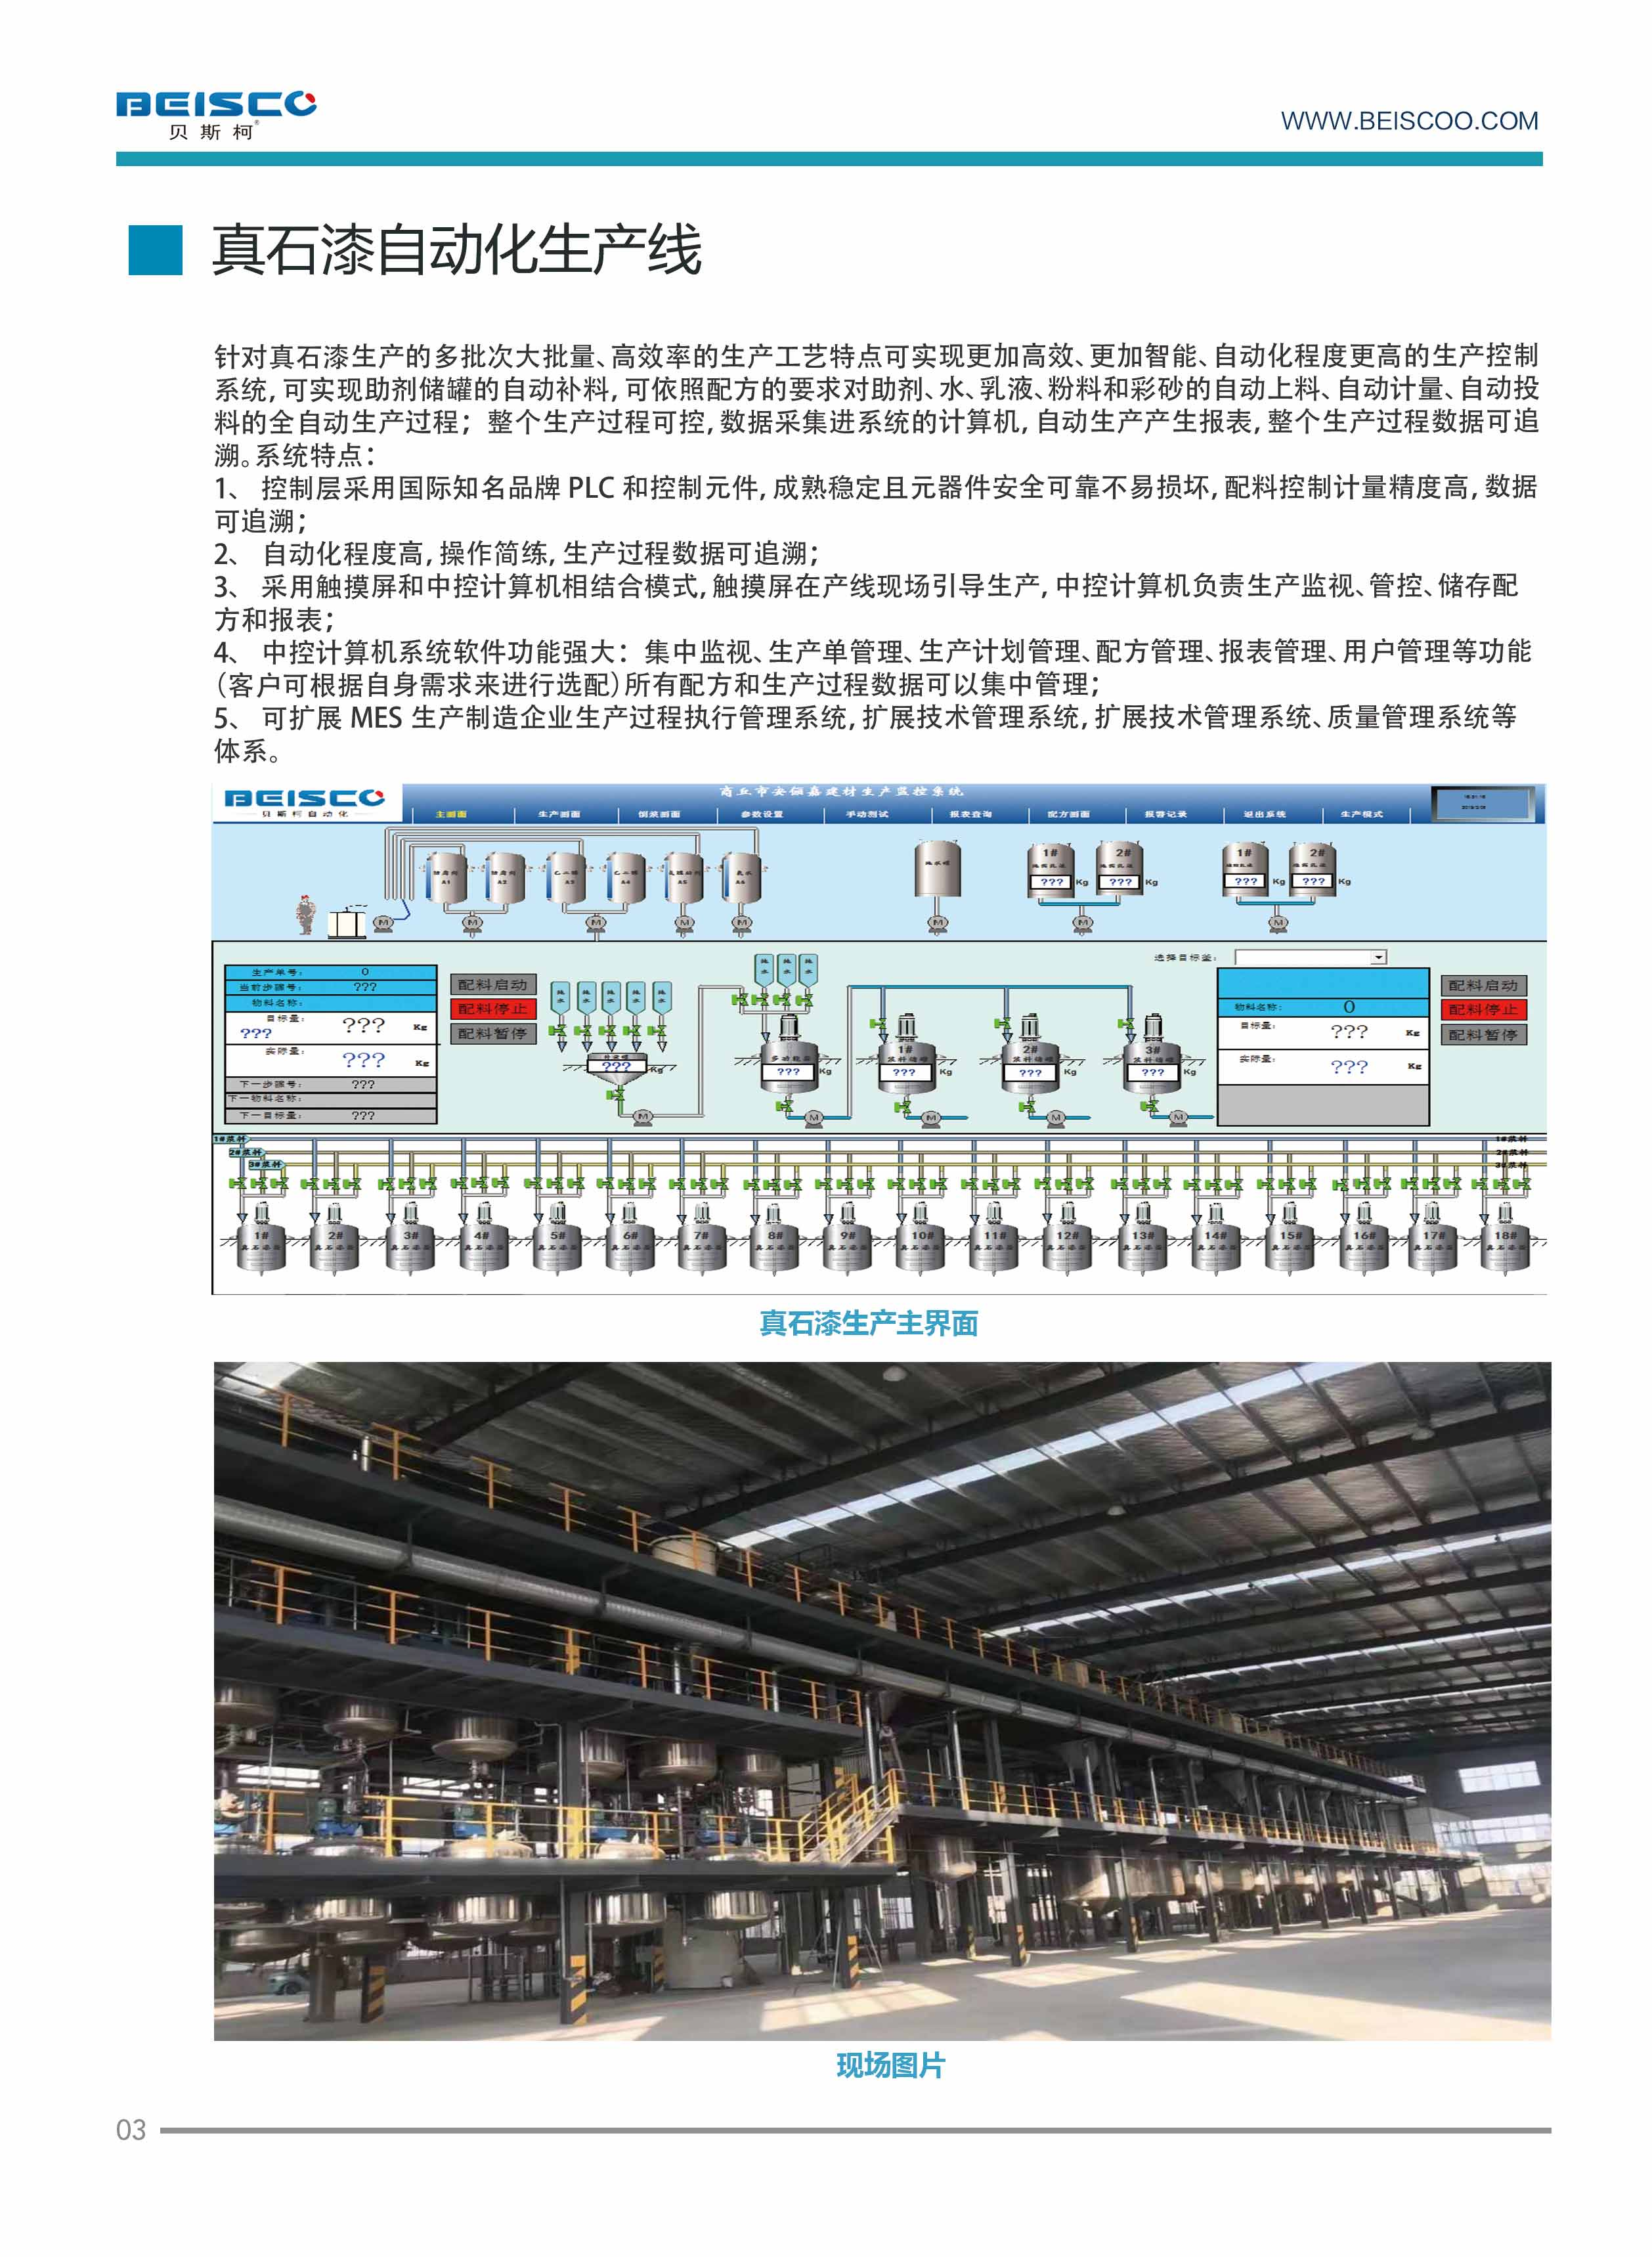 Real stone paint automatic production line